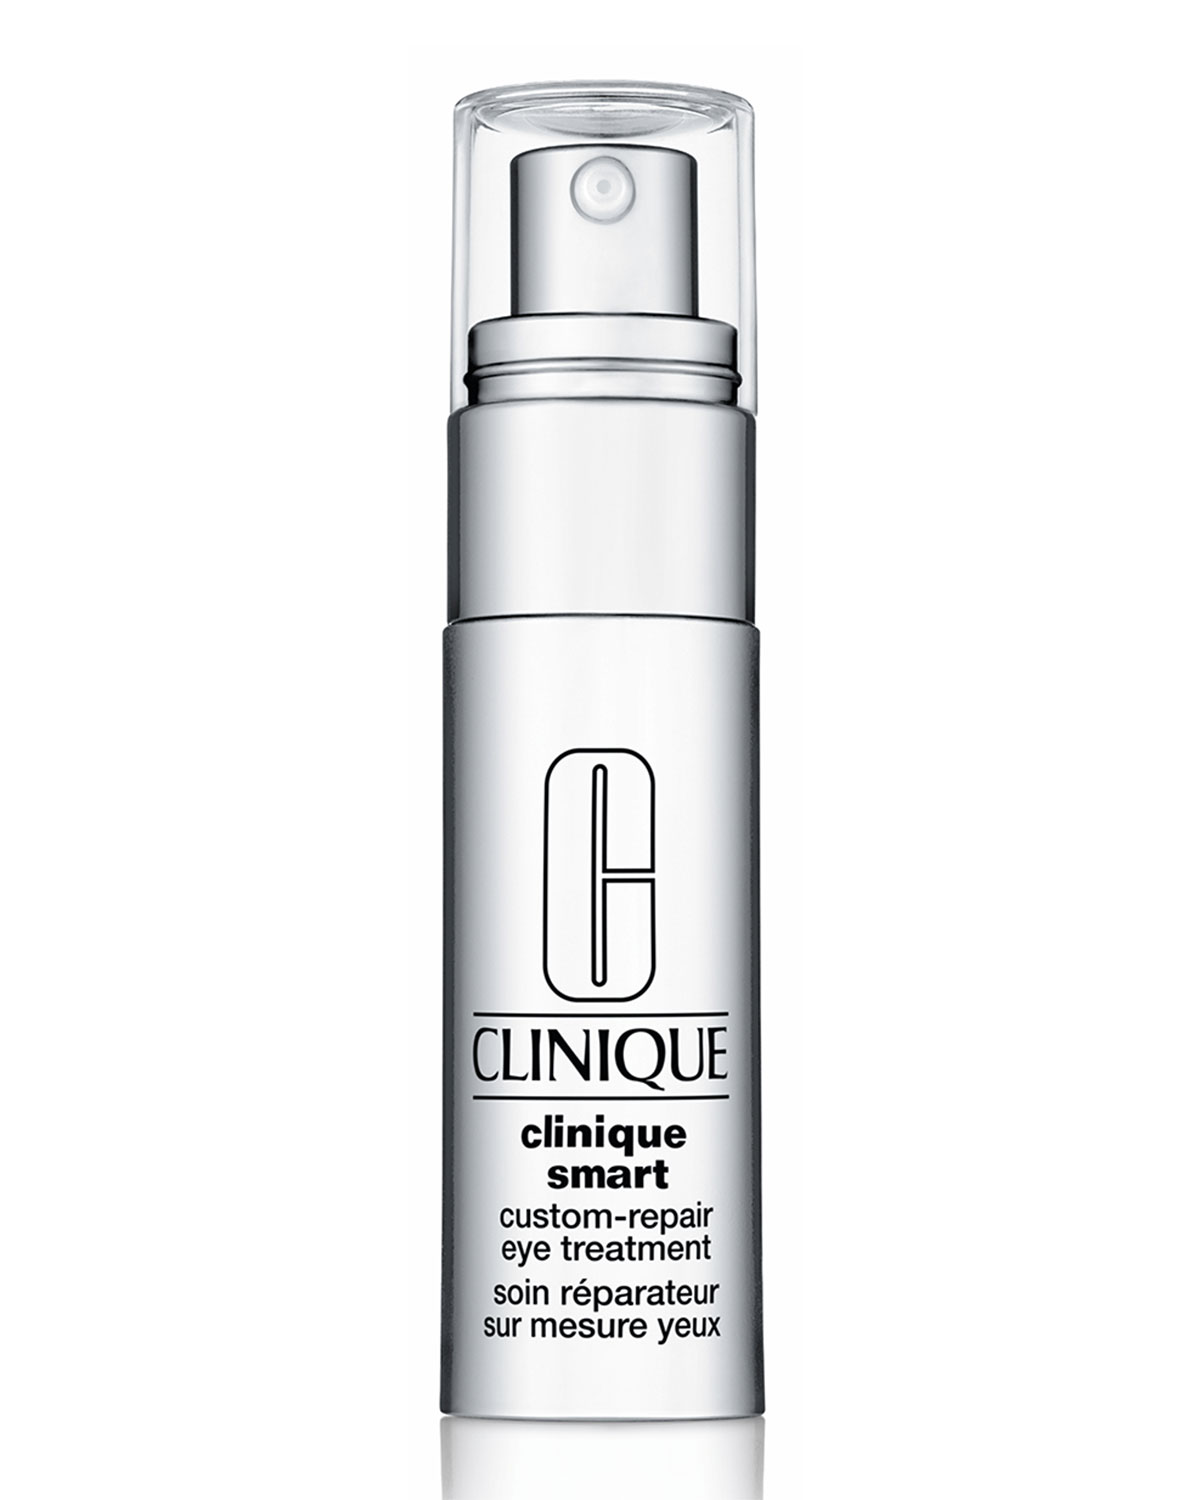 Clinique 0.5 oz. Clinique Smart Custom-Repair Eye Treatment